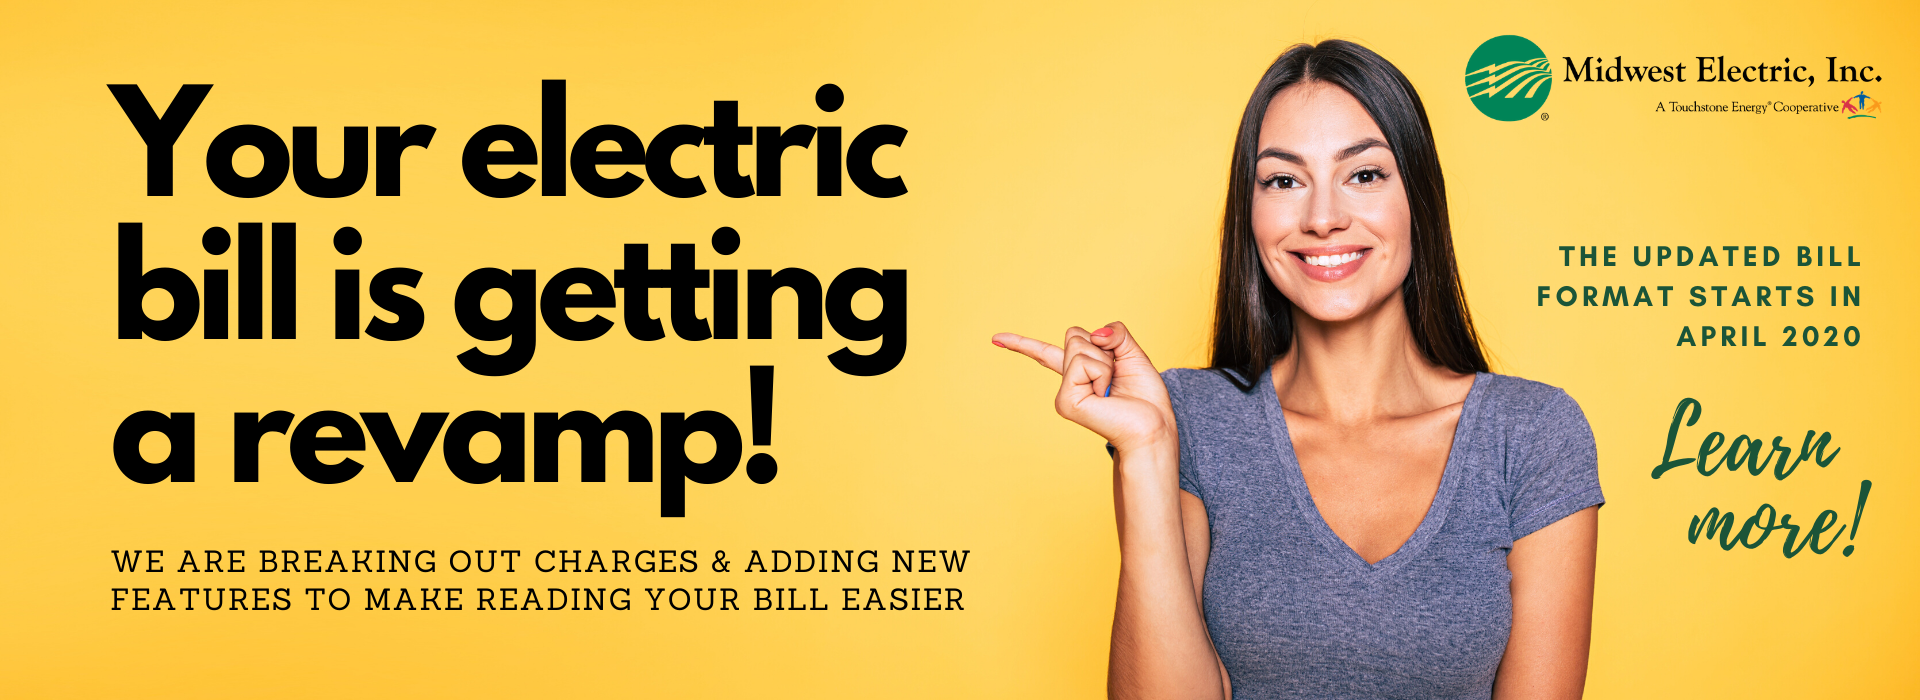 Starting in April 2020, your electric bill is getting a revamp because we are unbundling charges and adding new features. Click to learn more!